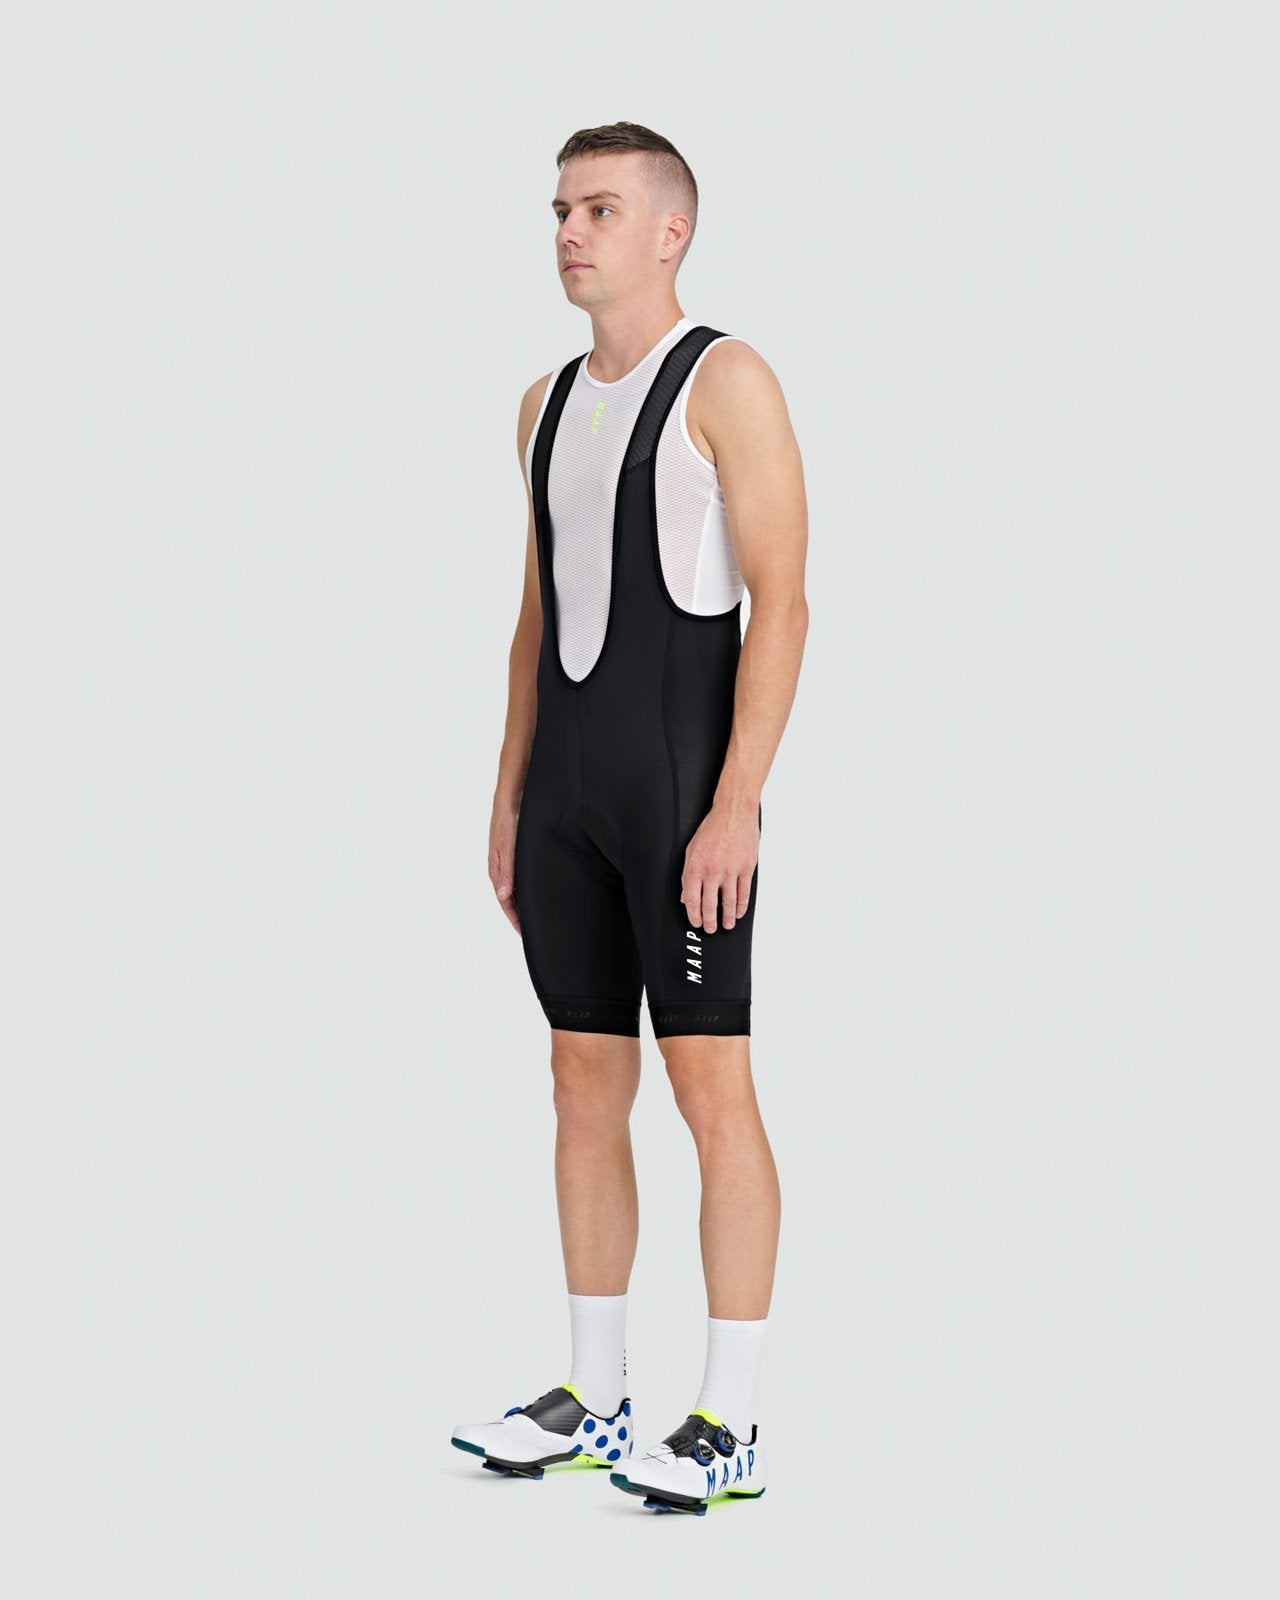 Training Bib Shorts - Black/White